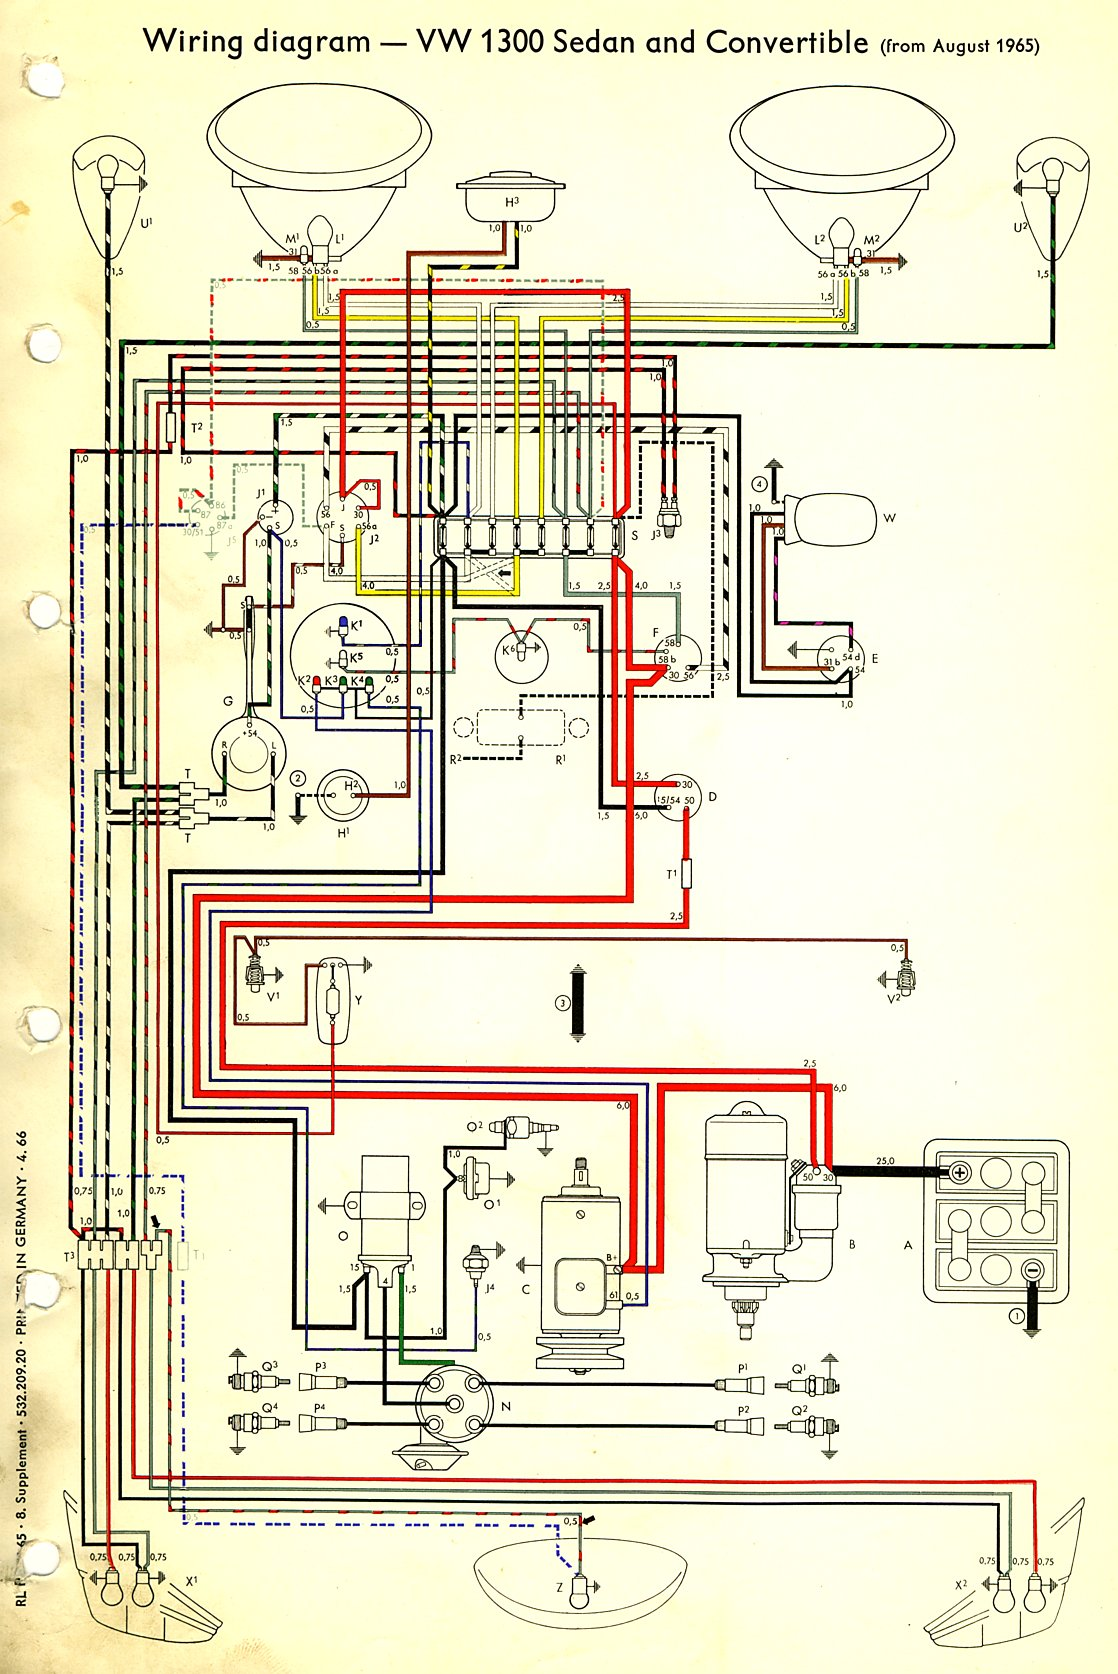 1973 vw beetle ignition coil wiring diagram 2007 pontiac vibe radio 1966 thegoldenbug